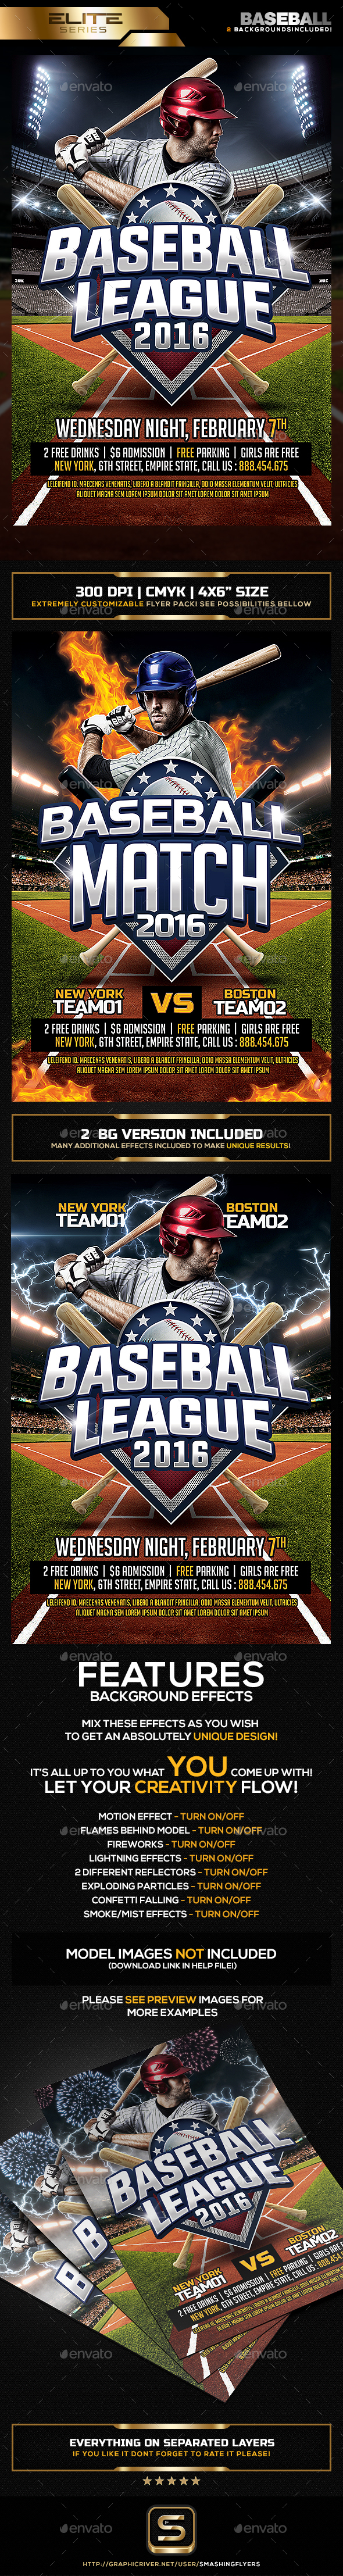 Baseball League Flyer Template - Sports Events